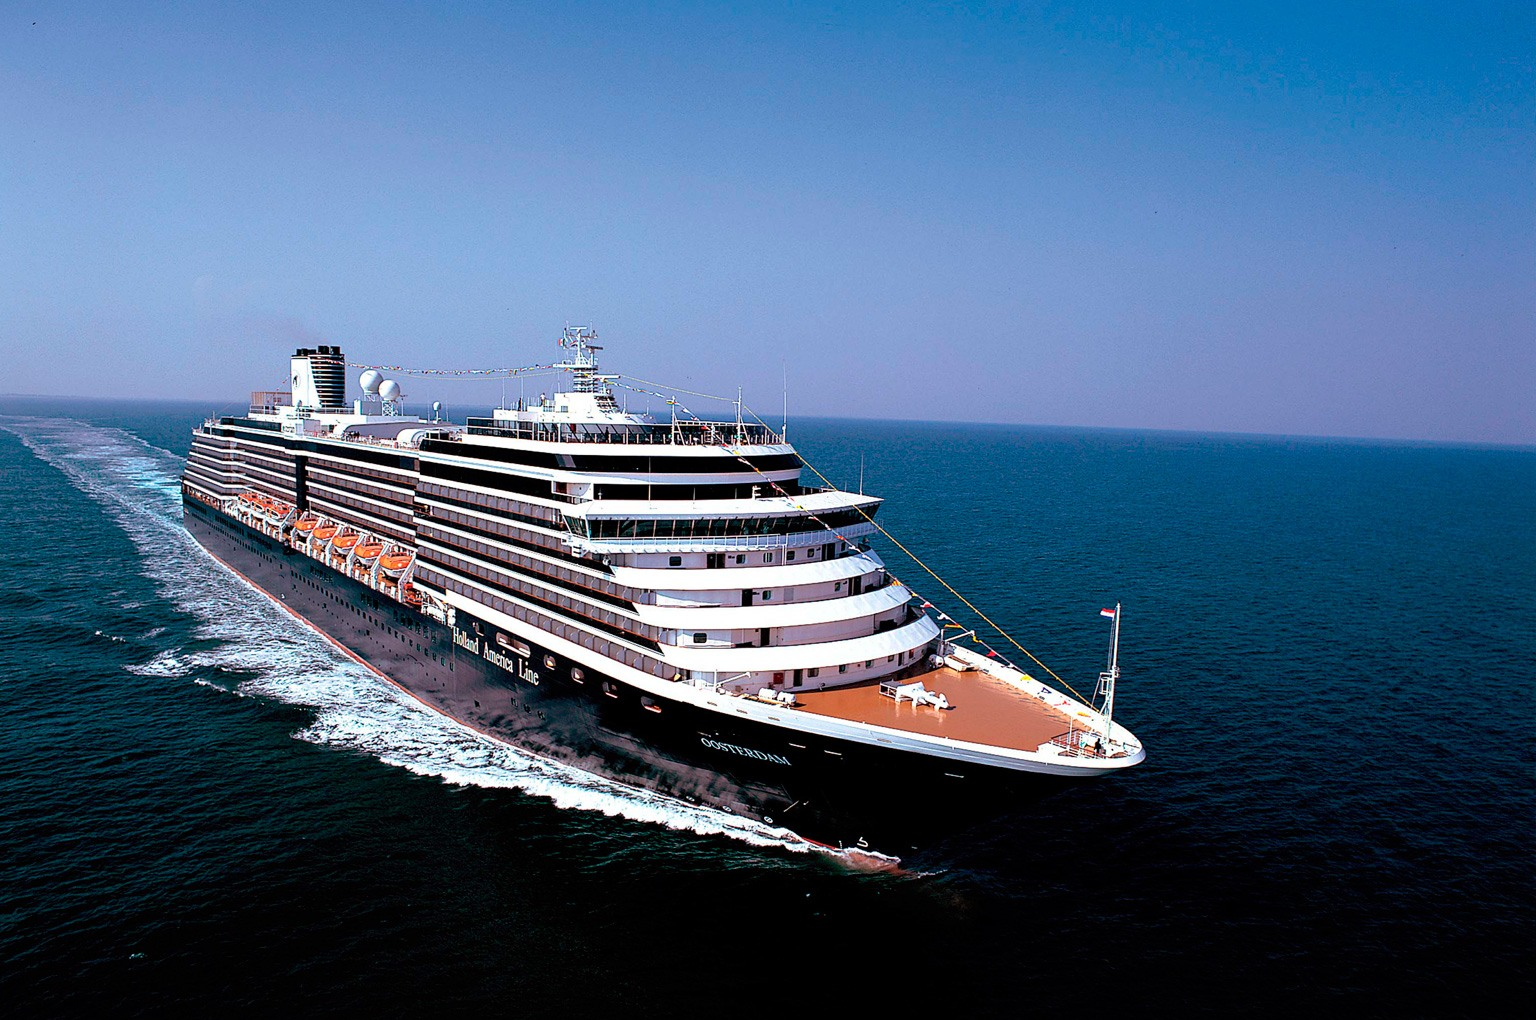 MS Oosterdam Holland America Line - Best holland america cruise ship